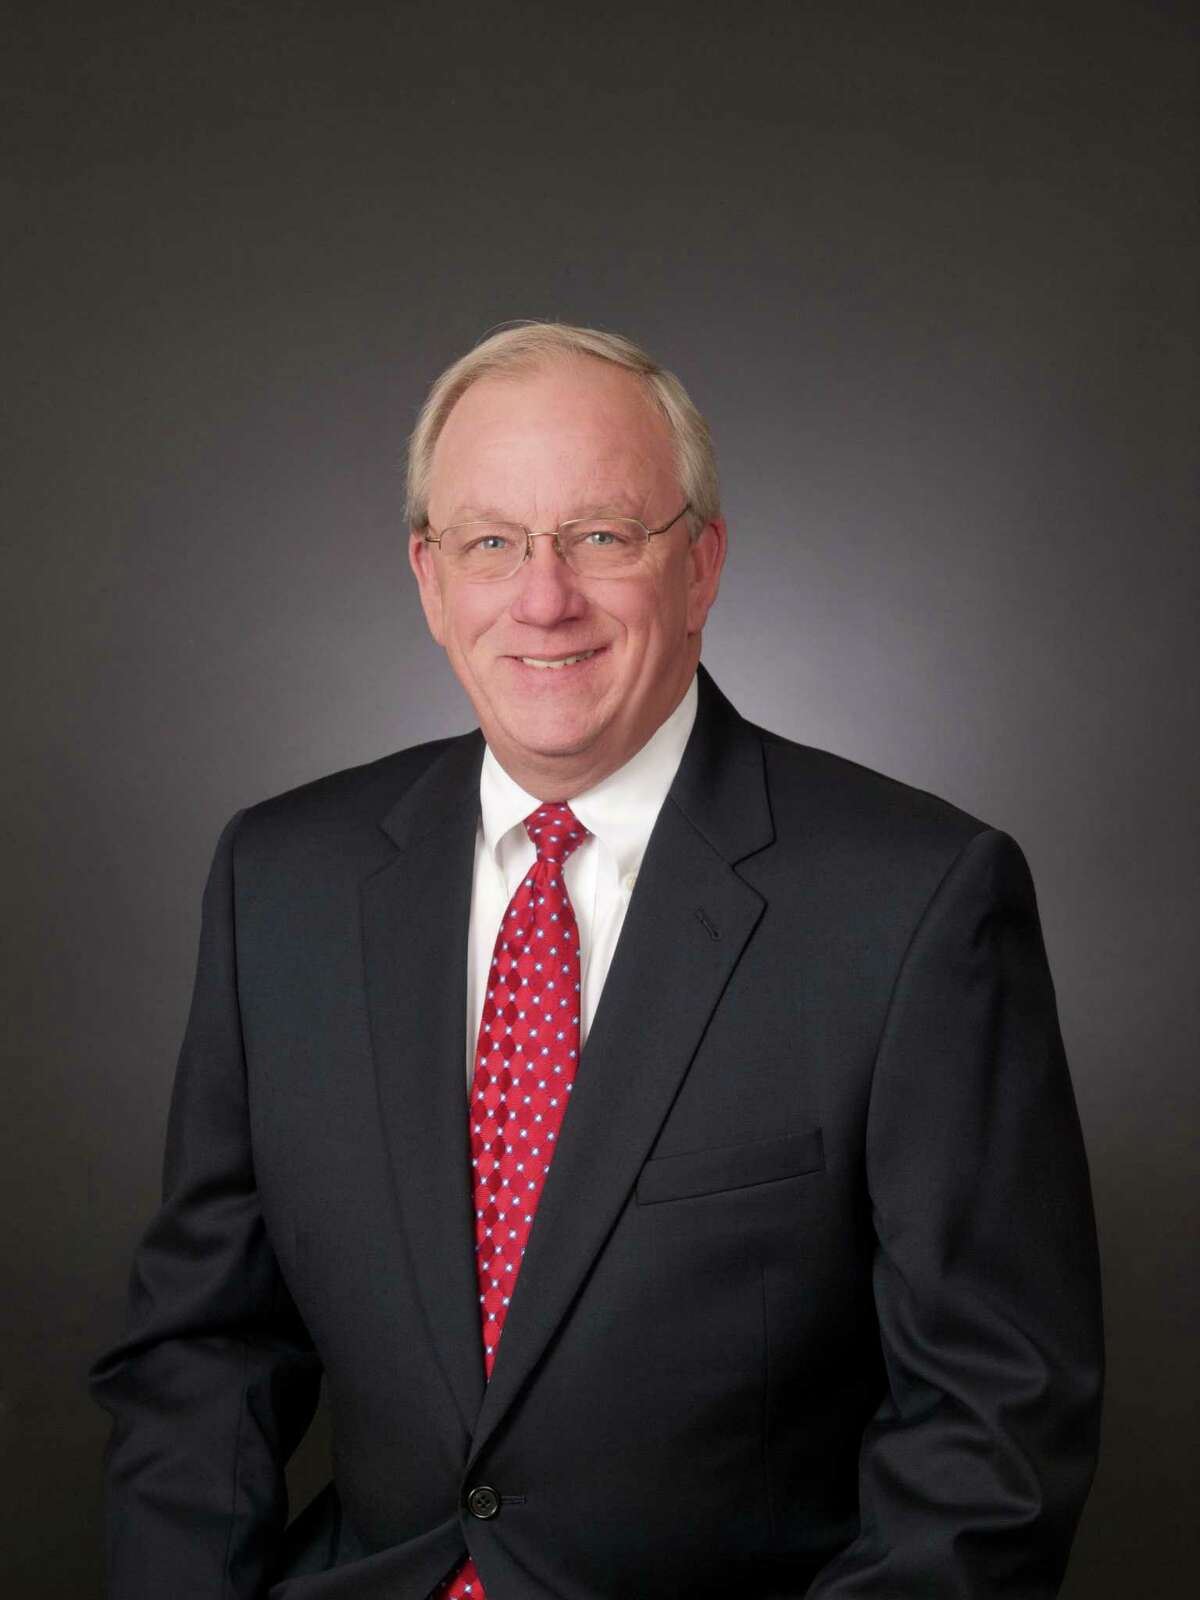 Mike Sullivan, Republican candidate for Harris County Tax Assessor-Collector.